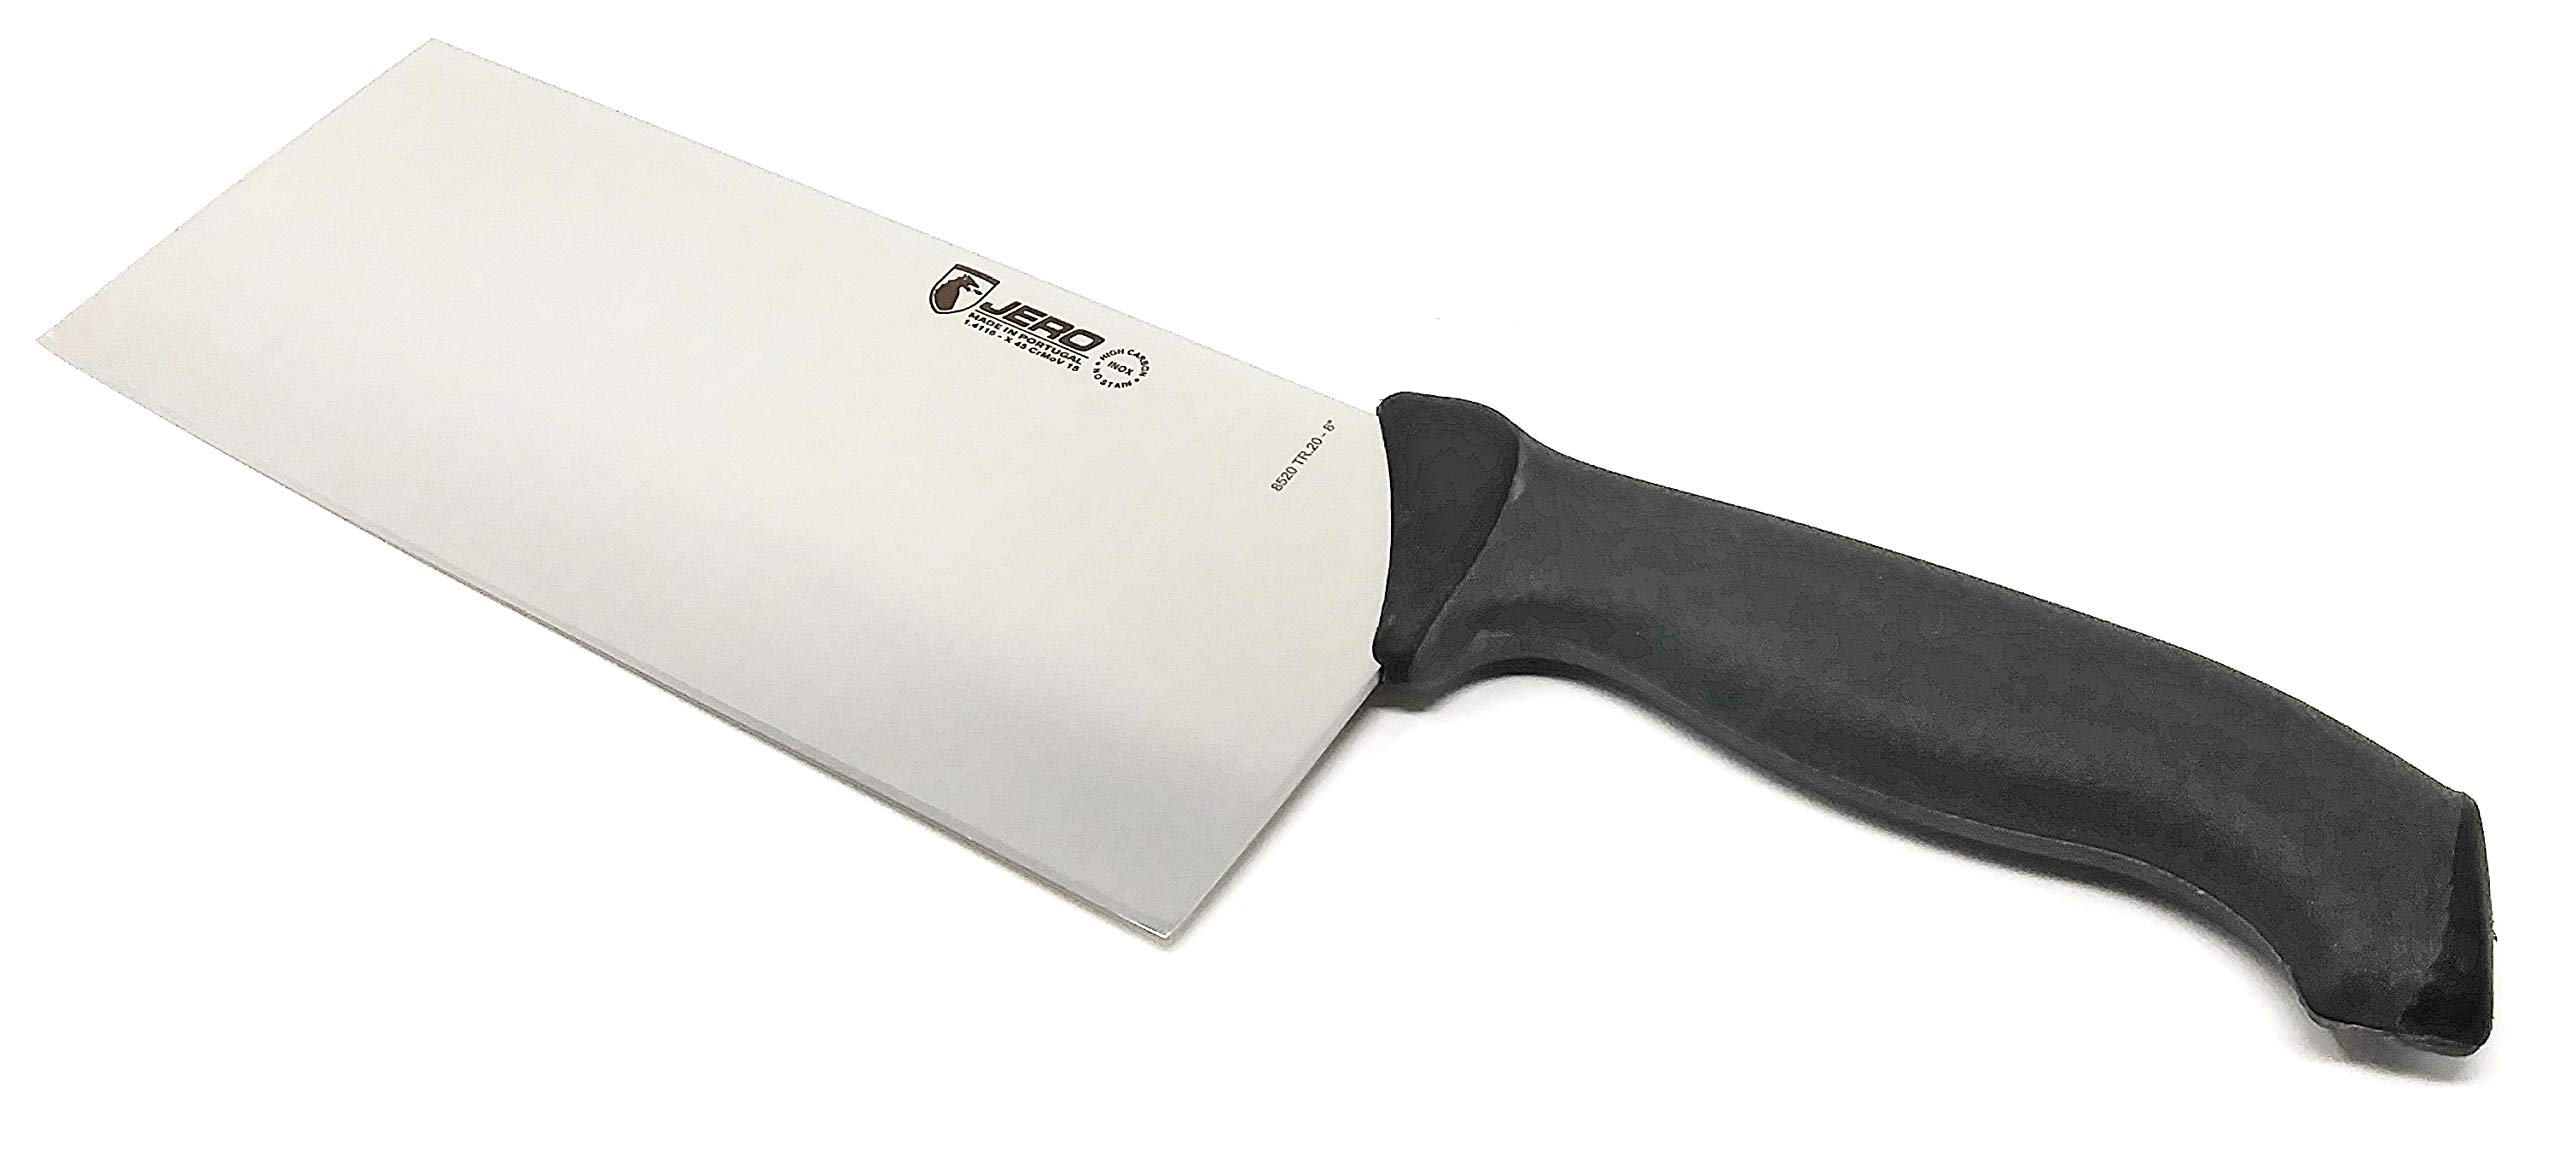 Jero TR Traction Grip Chinese Cleaver - 8'' Blade - Lightweight Model - High Carbon German Stainless Steel - Commercial Grade - Dual Injection Molded Handle - Retail Boxed - Made in Portugal by Jero